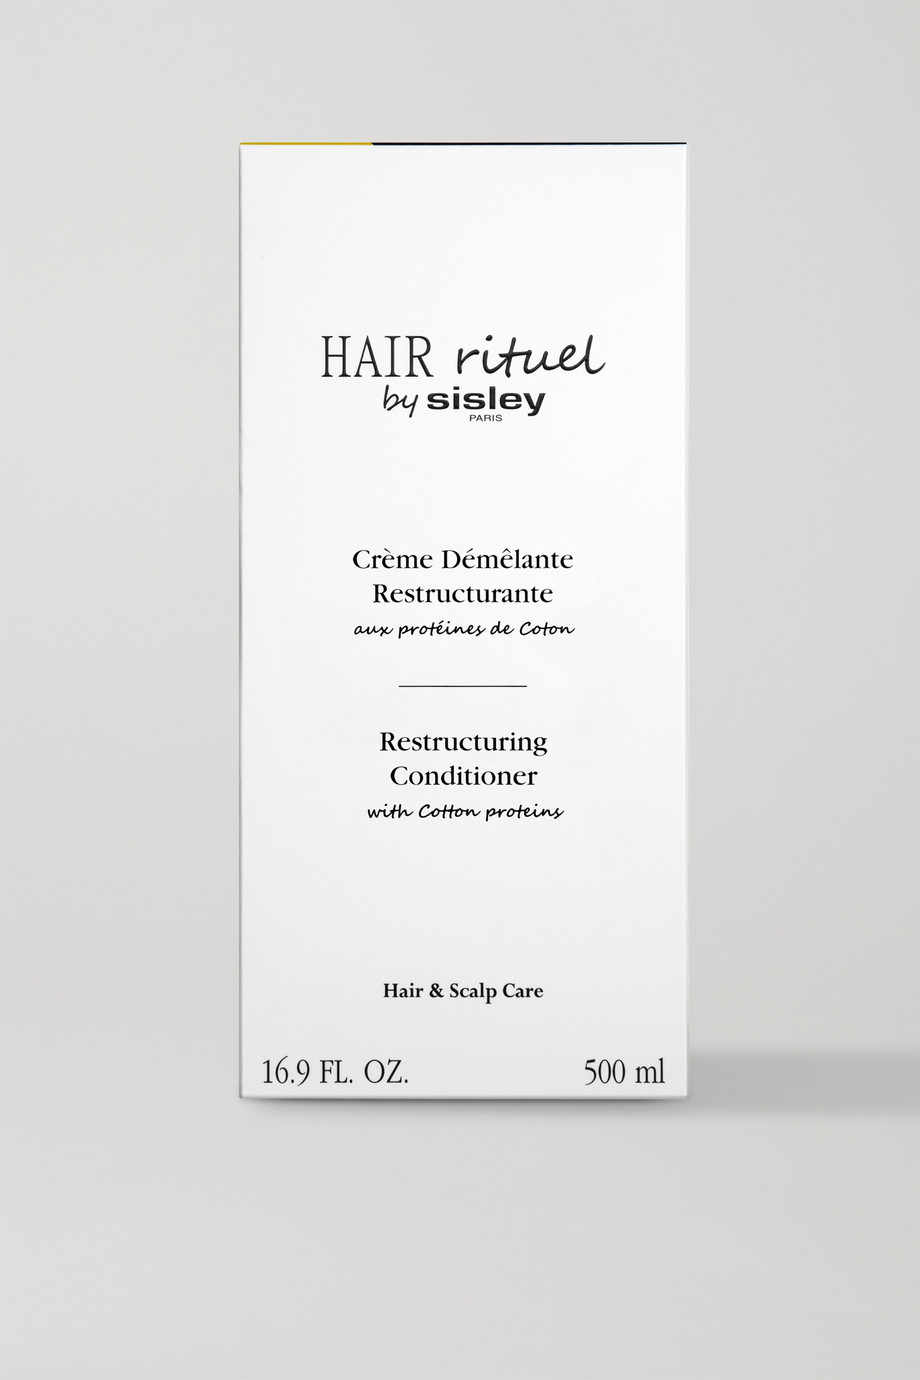 HAIR rituel by Sisley Restructuring Conditioner, 500ml